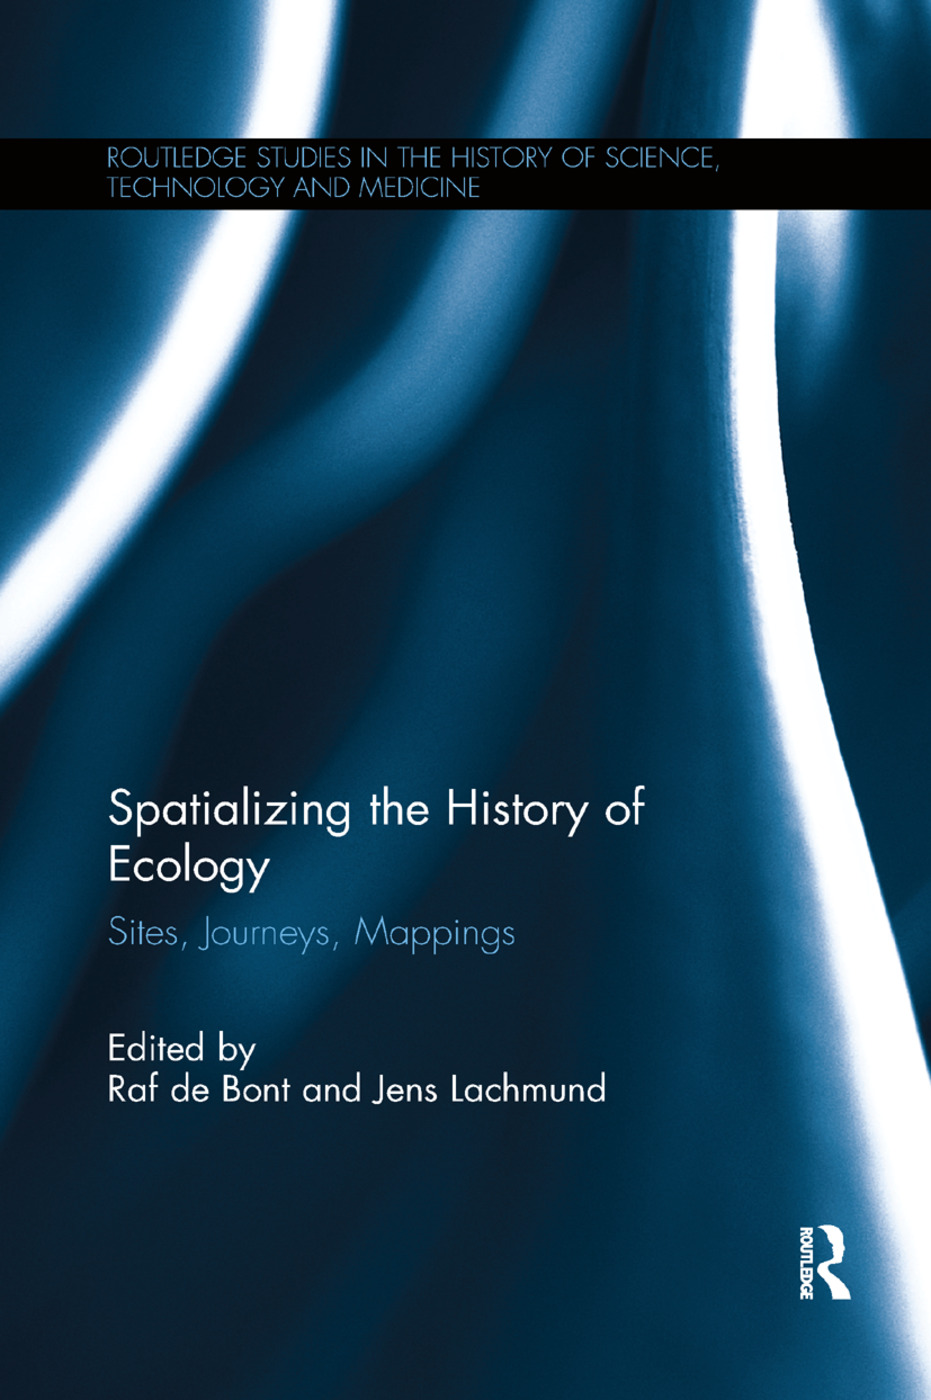 Spatializing the History of Ecology: Sites, Journeys, Mappings book cover